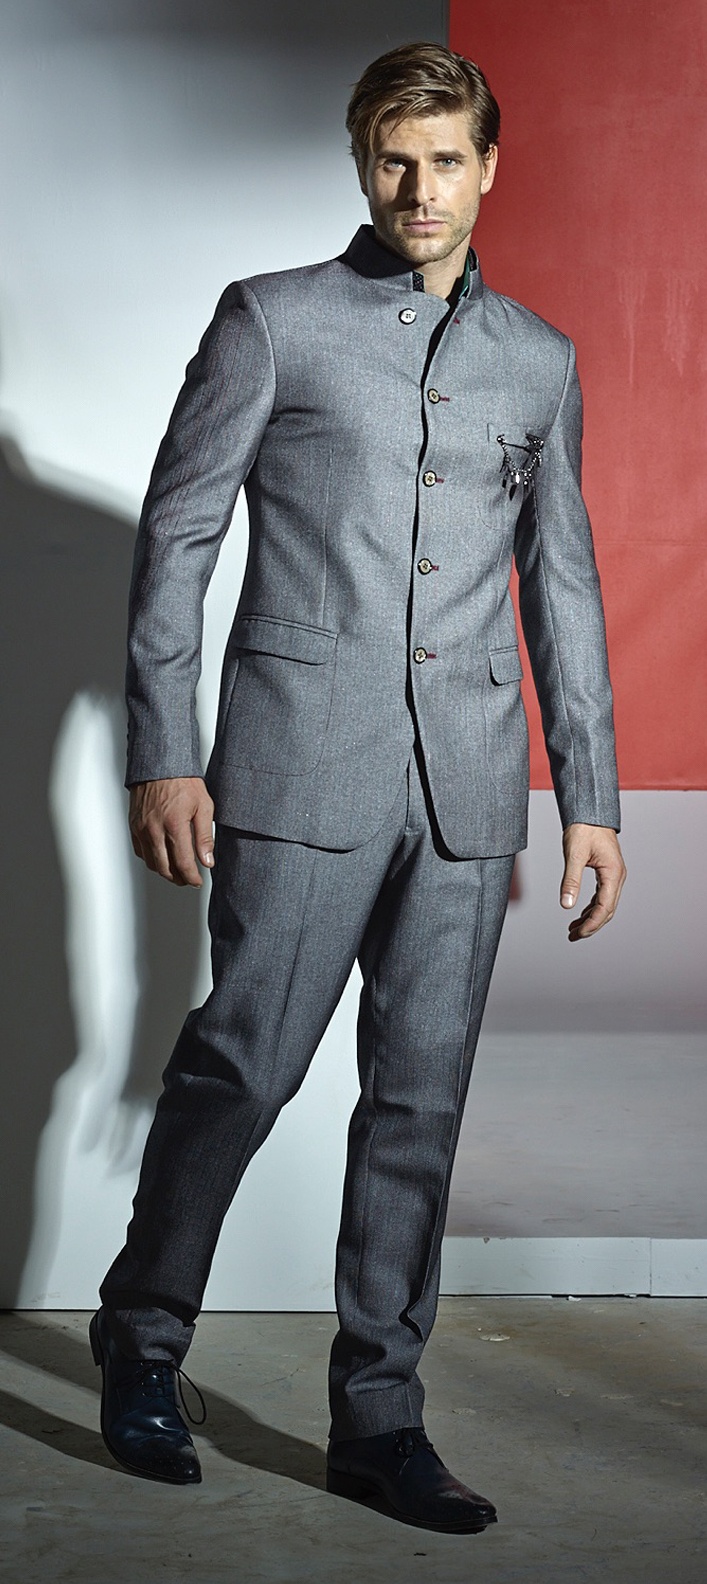 502789: Black and Grey color family stitched Jodhpuri Suit .